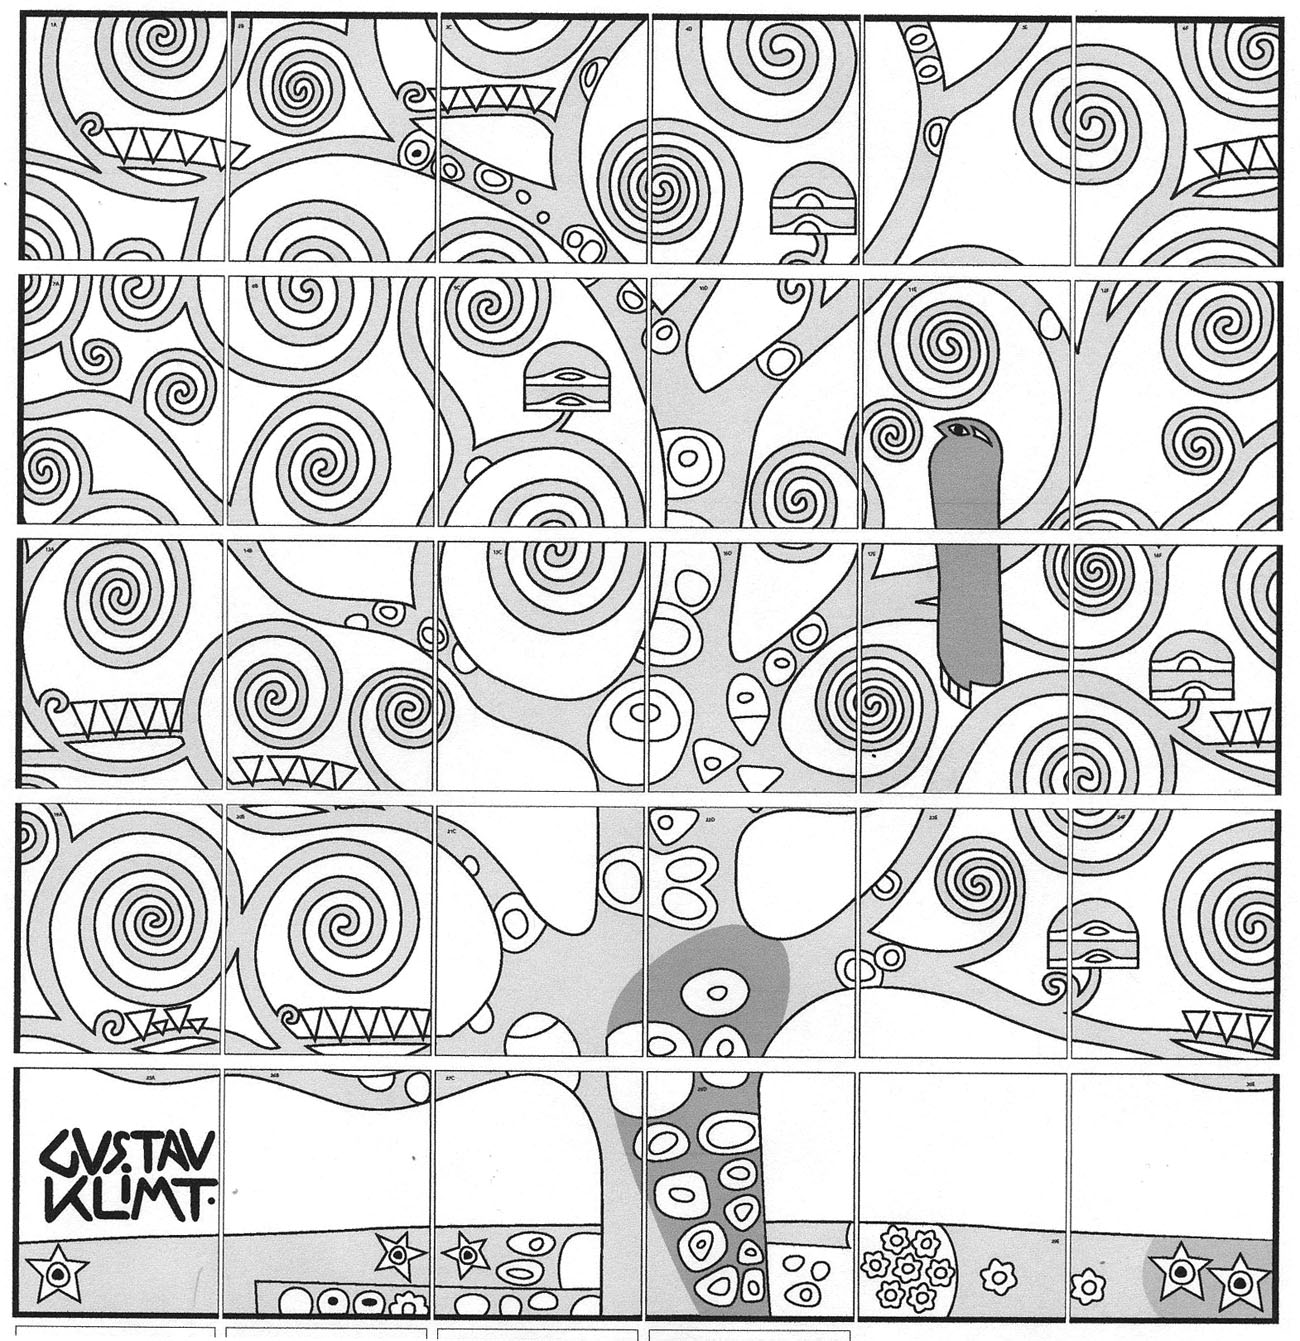 Klimt Tree of Life - Art Projects for Kids